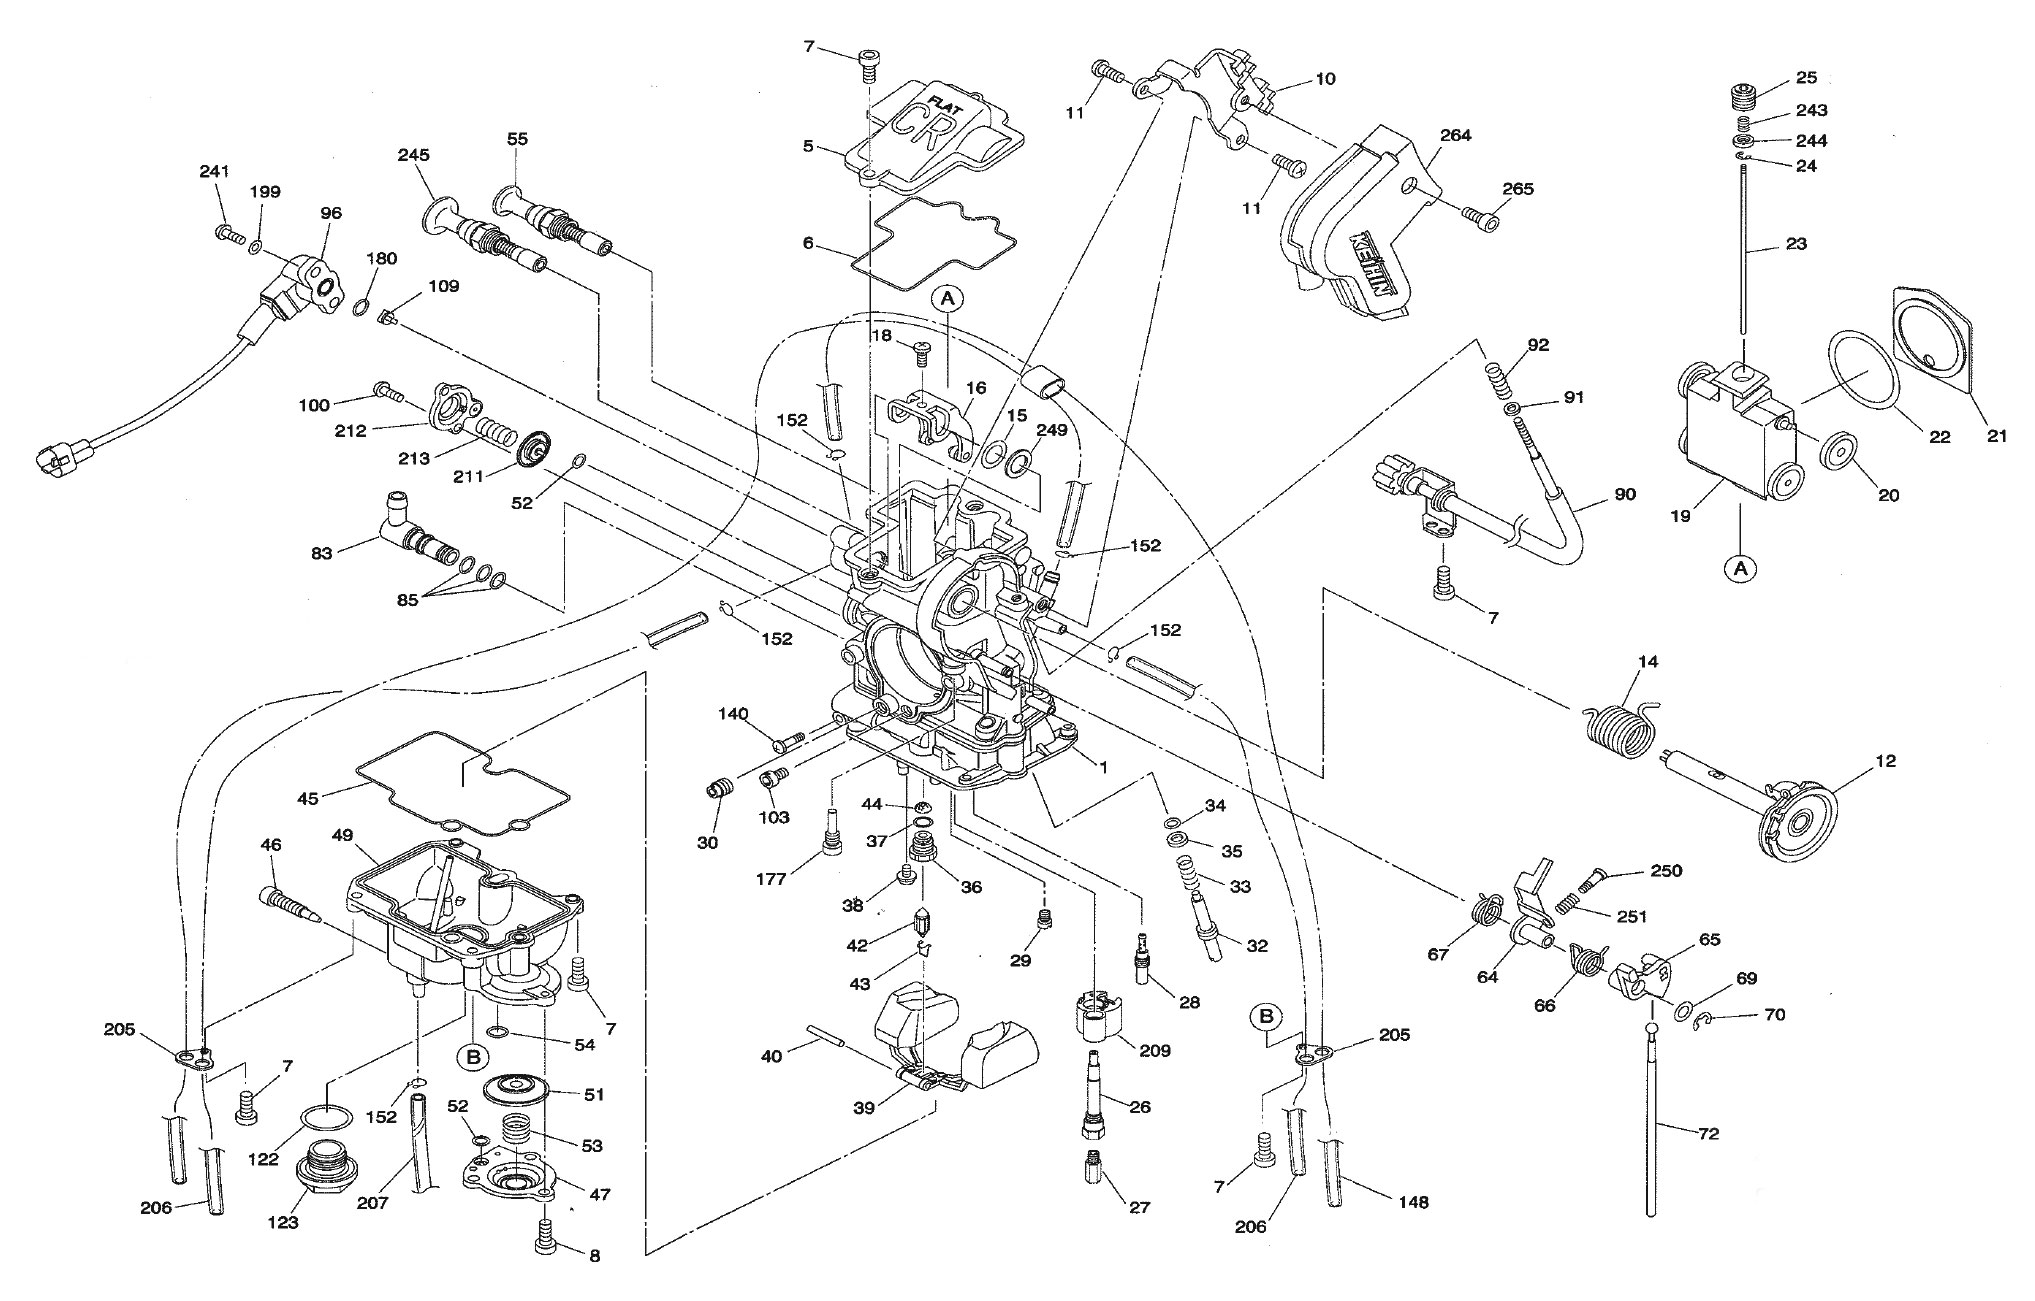 Exploded View Parts Diagram Keihin Fcr Mx 32 37 39 40 41